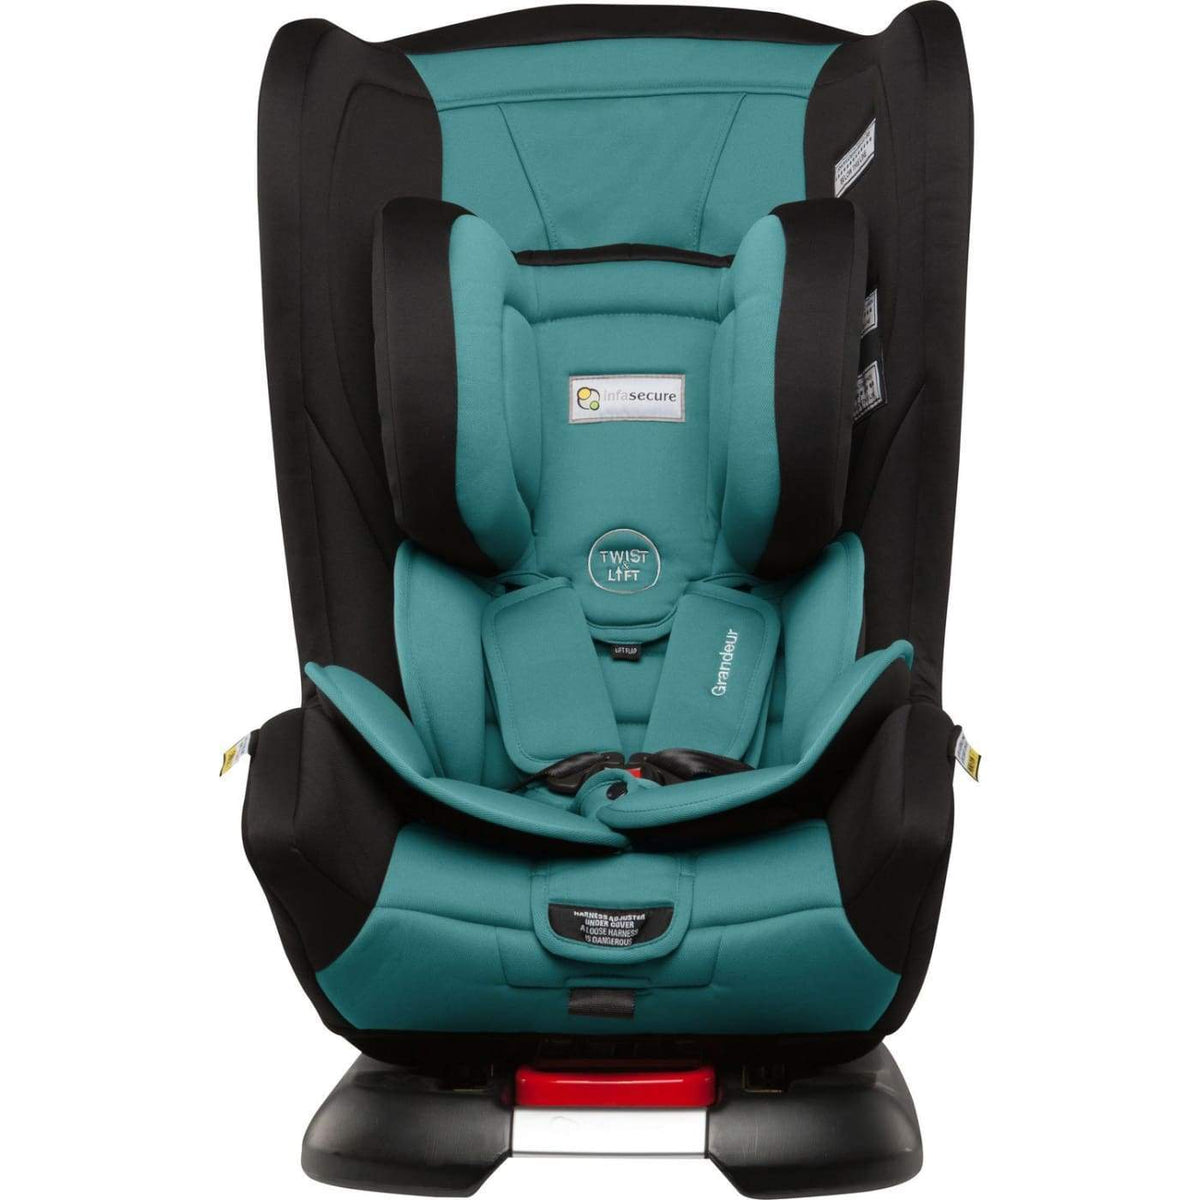 InfaSecure Astra Grandeur Harnessed Convertible Car Seat 0-8YR - Aqua - CAR SEATS - HARNESSED CONV CAR SEATS (0-8YR)